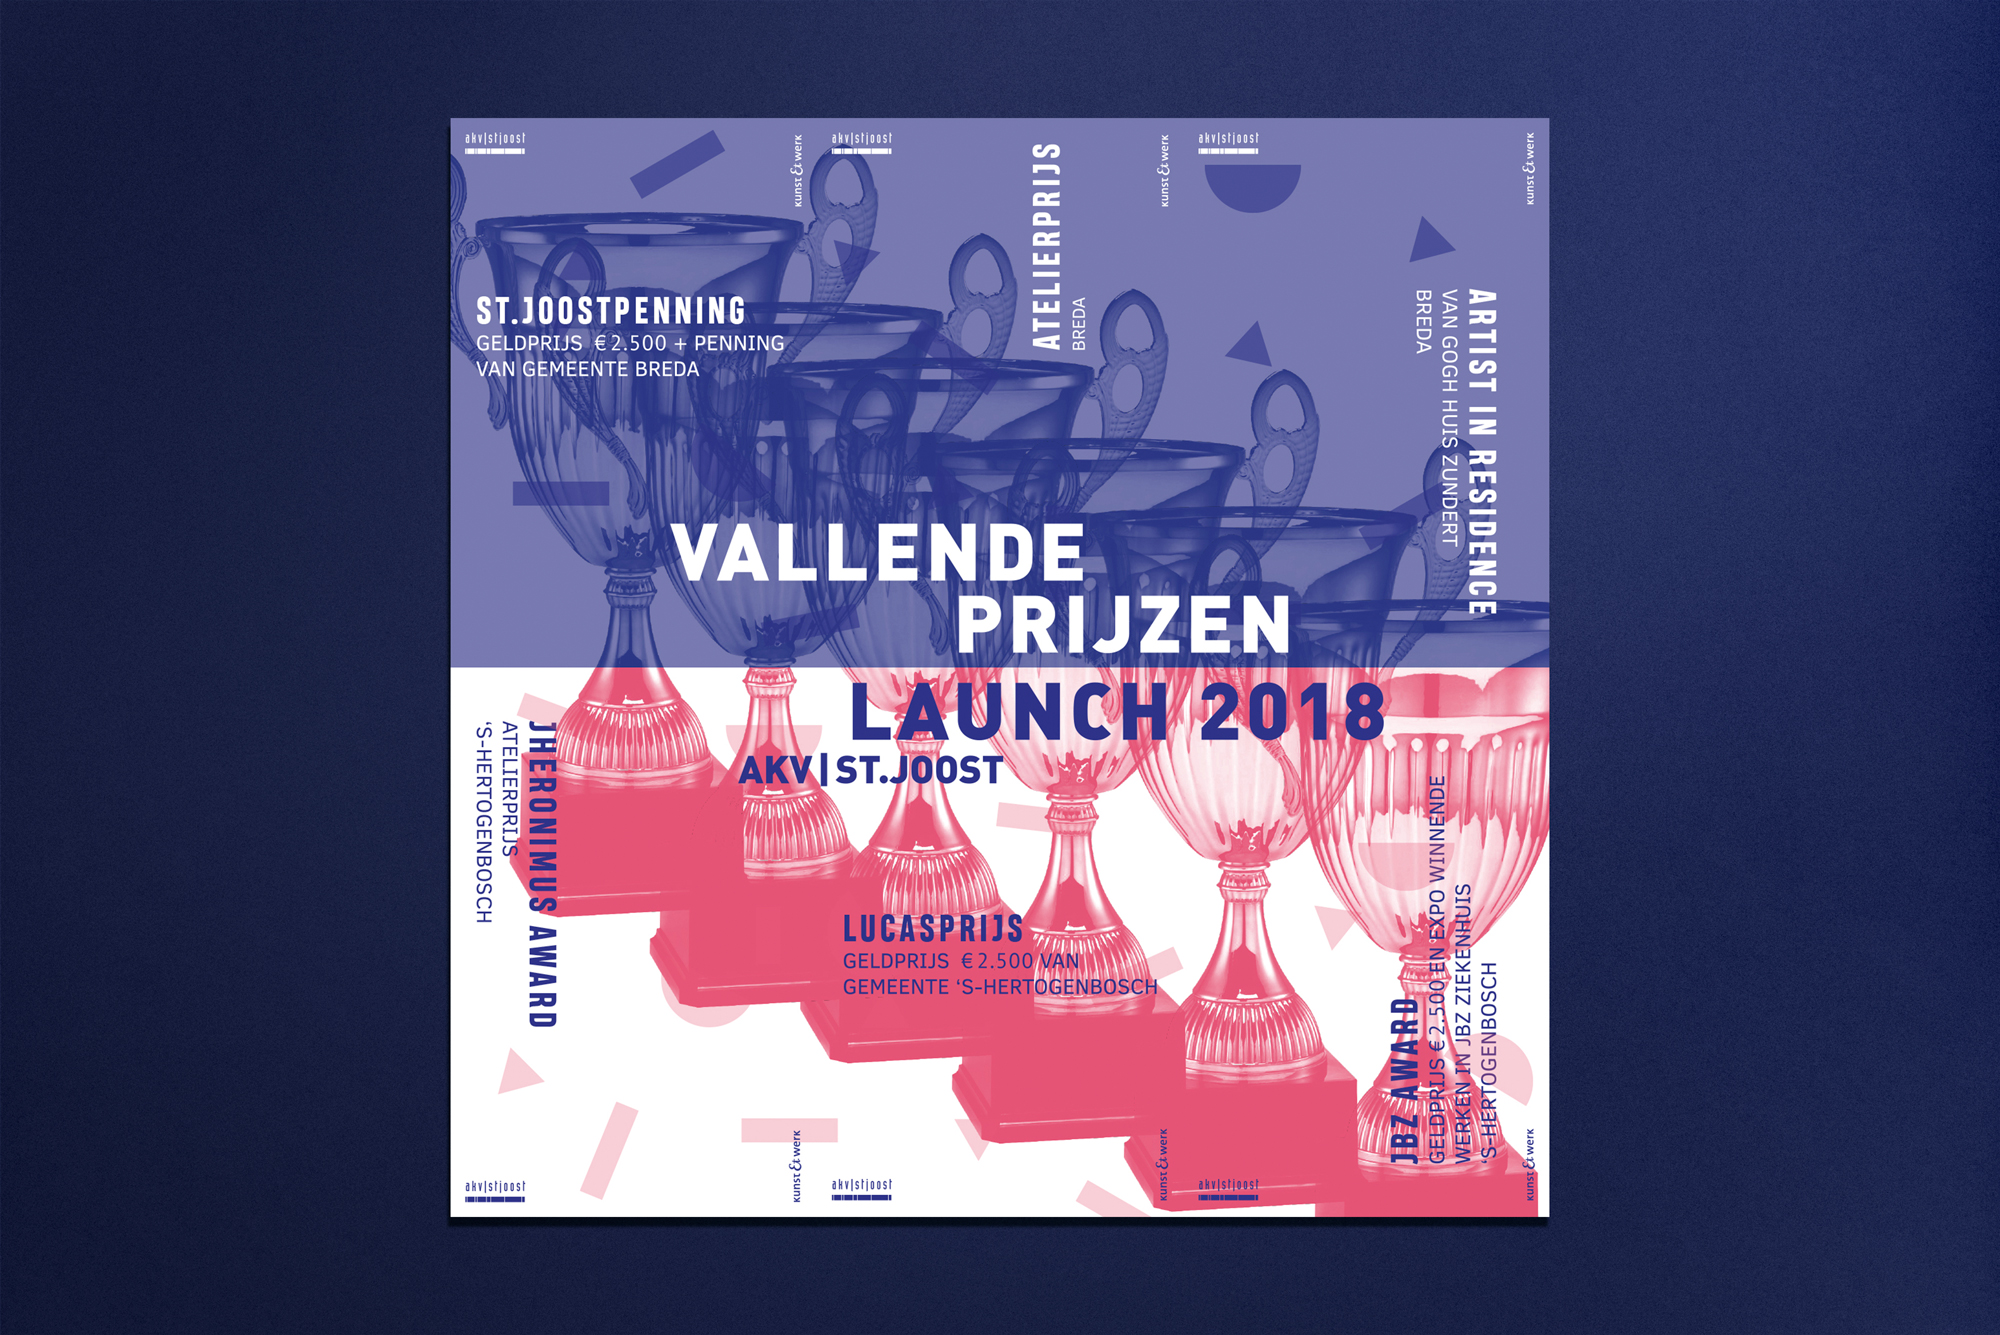 Vallende Prijzen Launch 2018